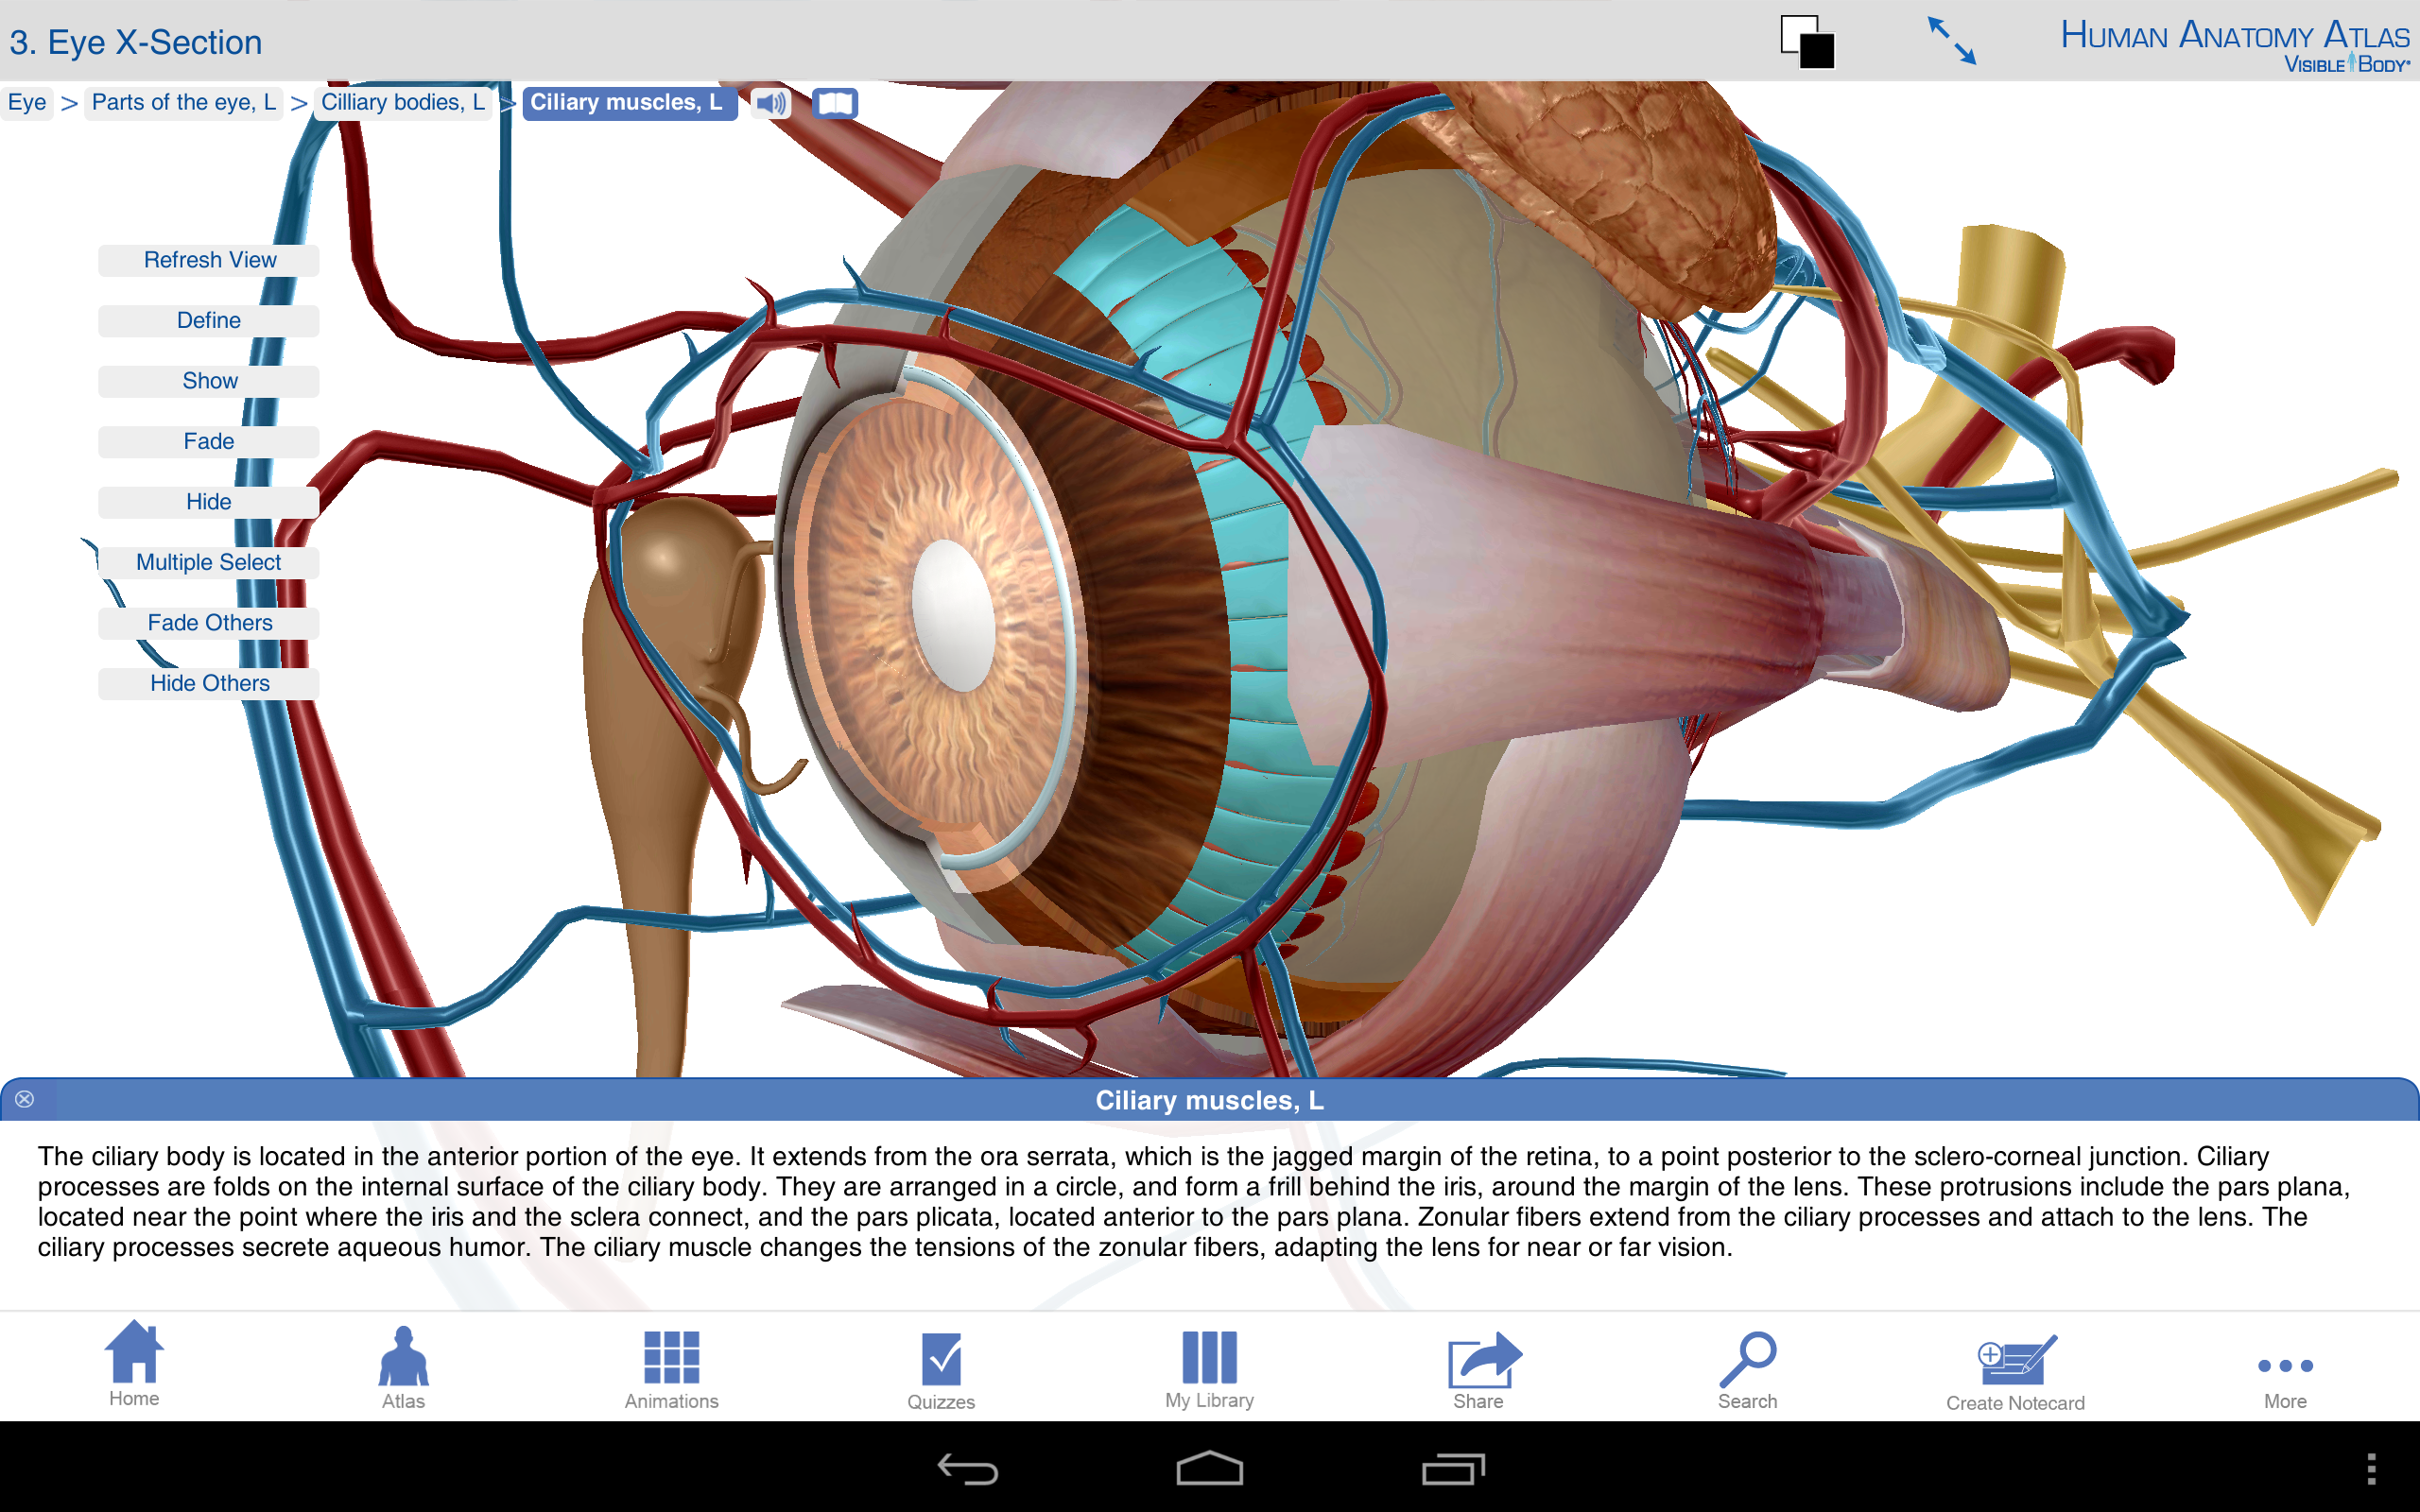 Amazon.com: Human Anatomy Atlas: Appstore for Android